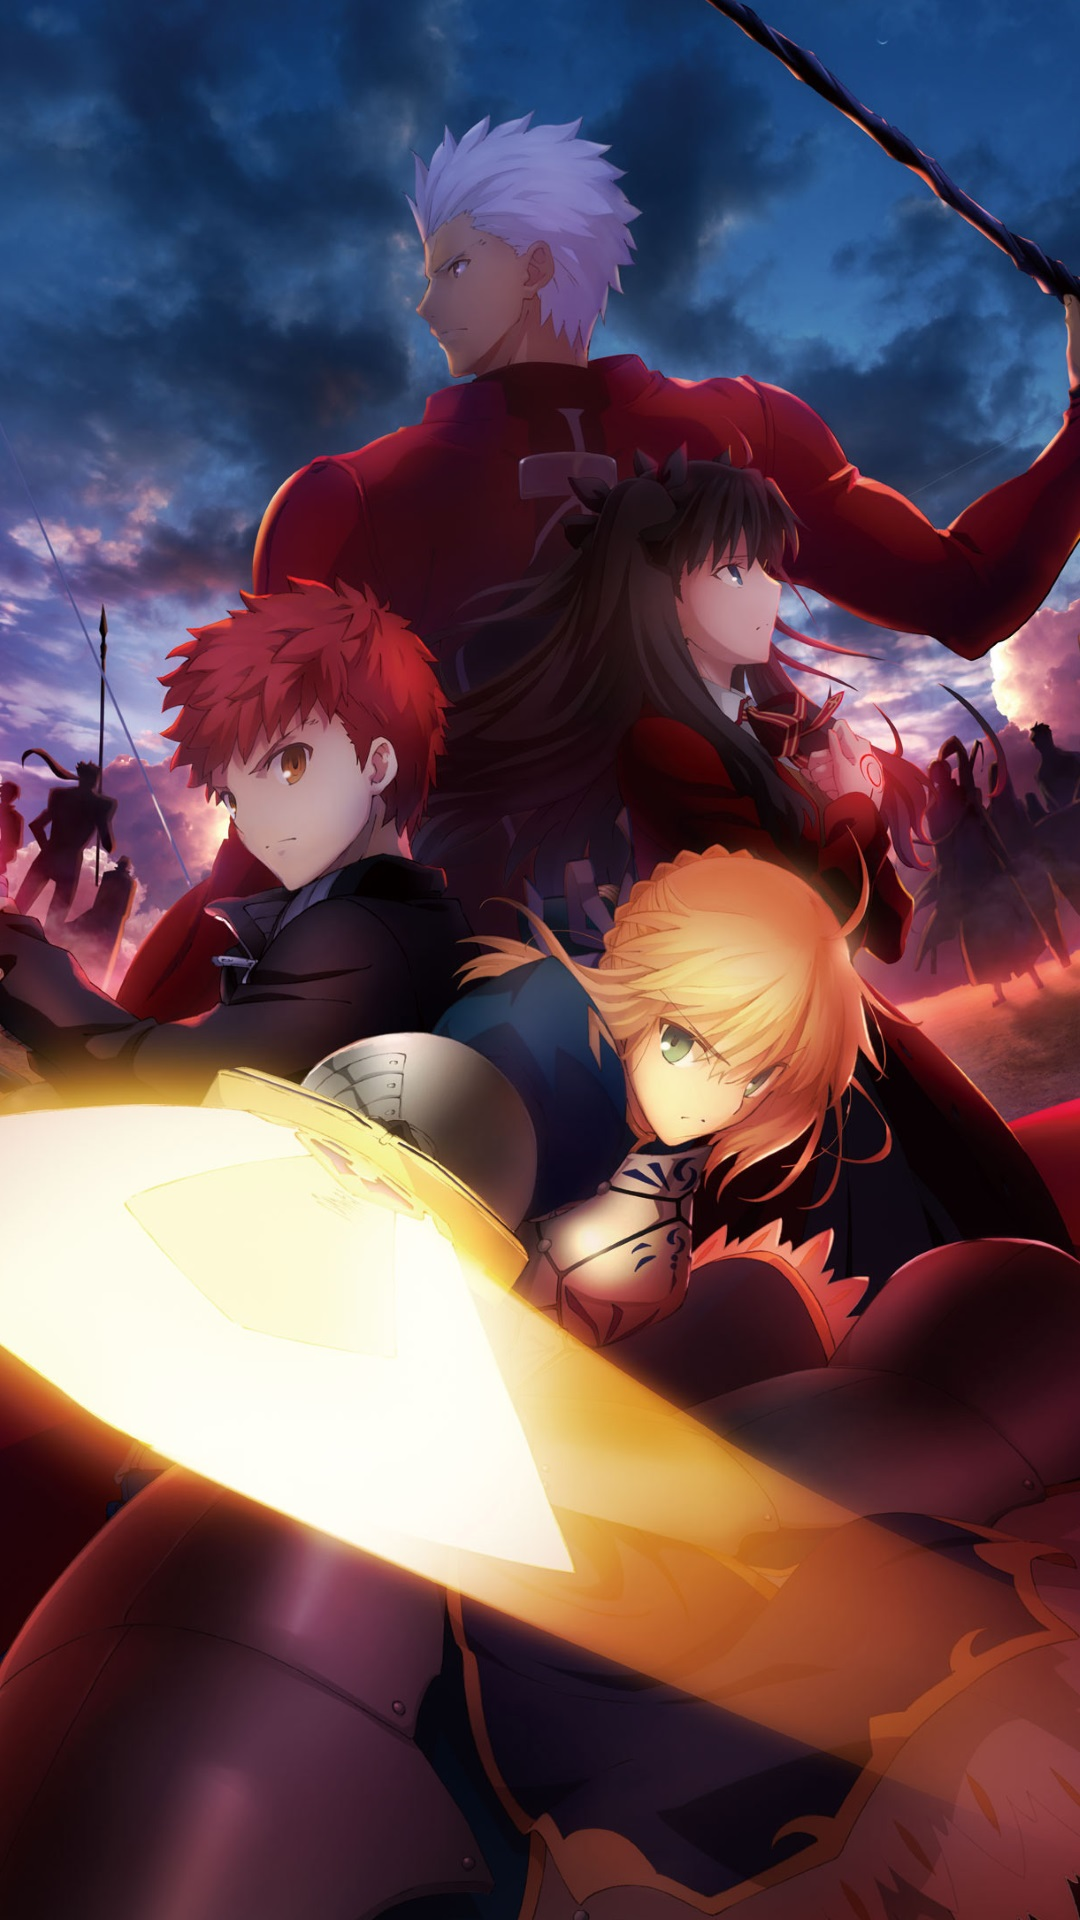 Iphone X Liquid Wallpaper Fate Stay Night Unlimited Blade Works 1080x1920